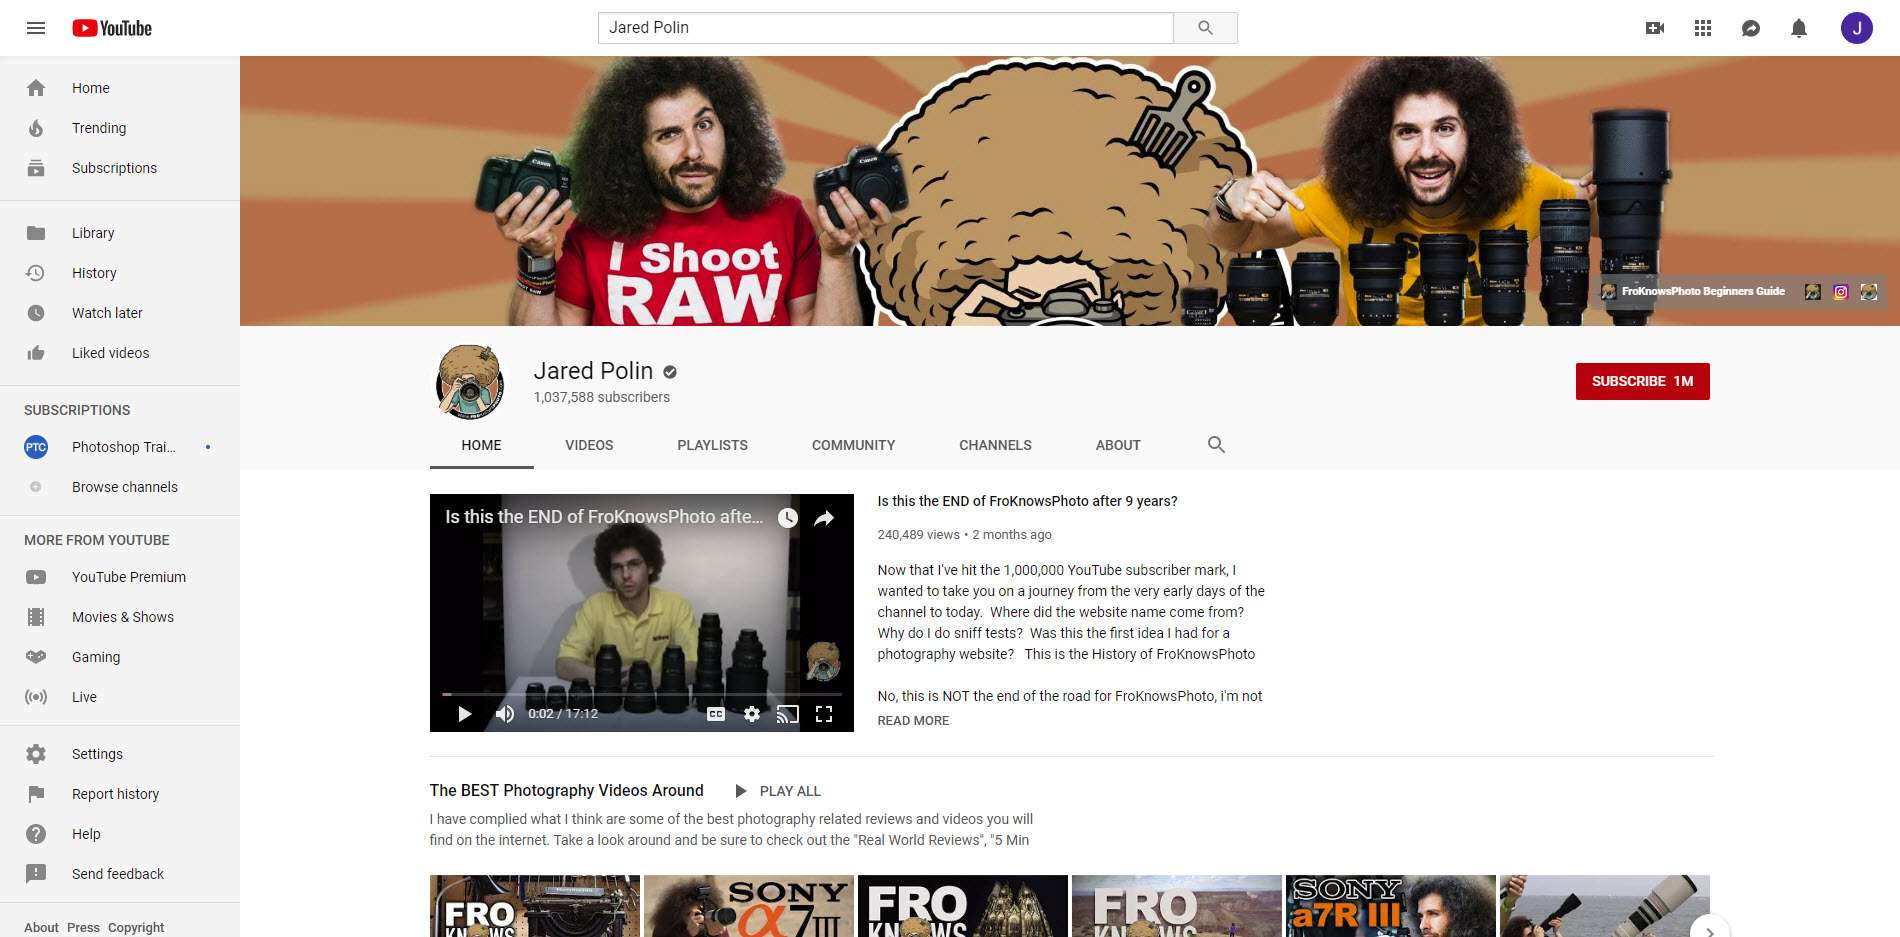 YouTube - Jared Polin, FroKnowsPhoto Channel